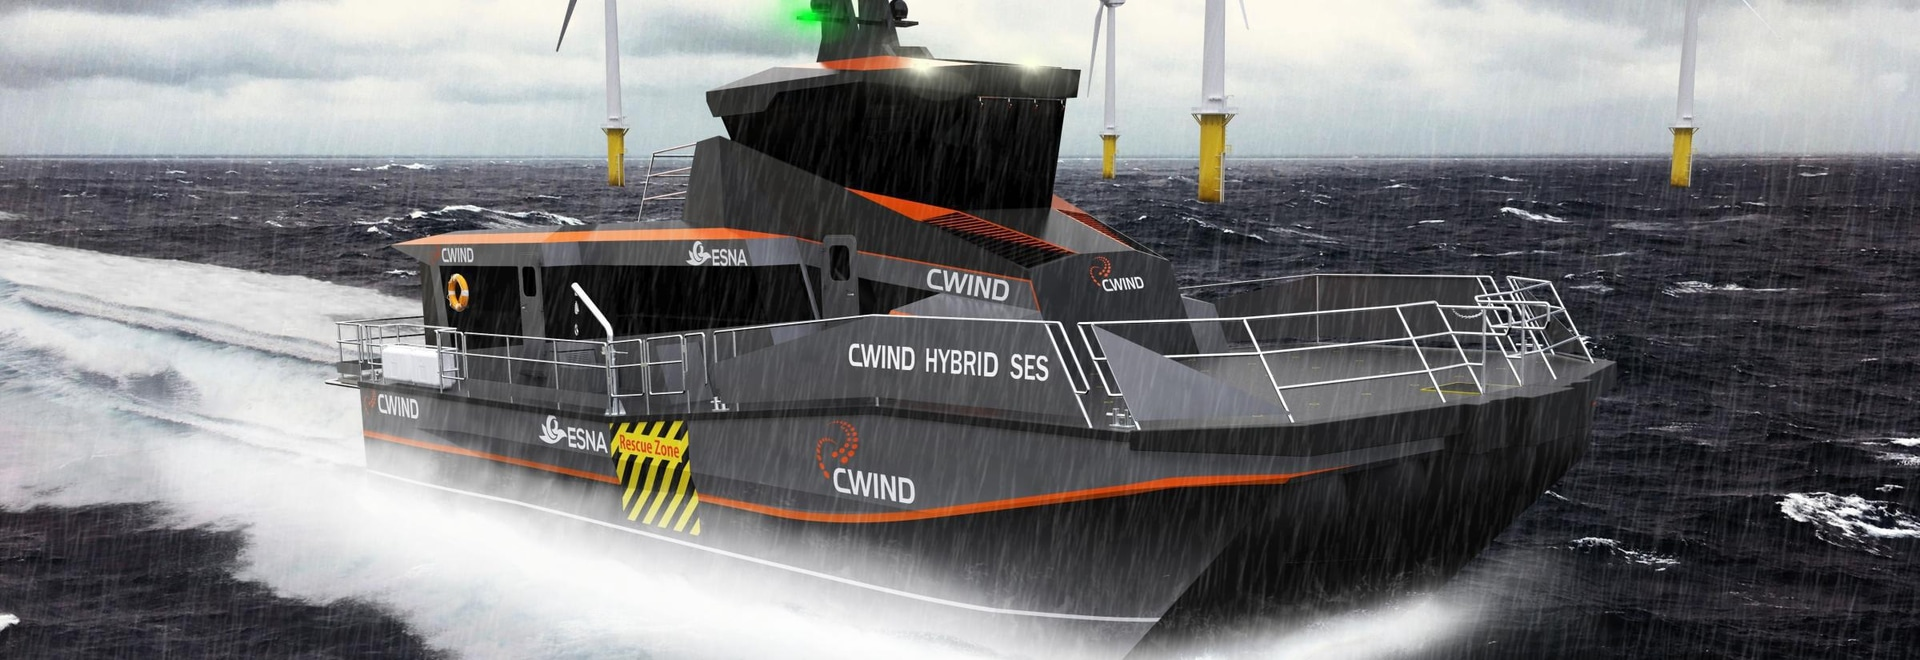 Corvus Energy will supply its Dolphin energy storage system to SEC Marine Ltd for the hybrid SES. Image: Corvus Energy